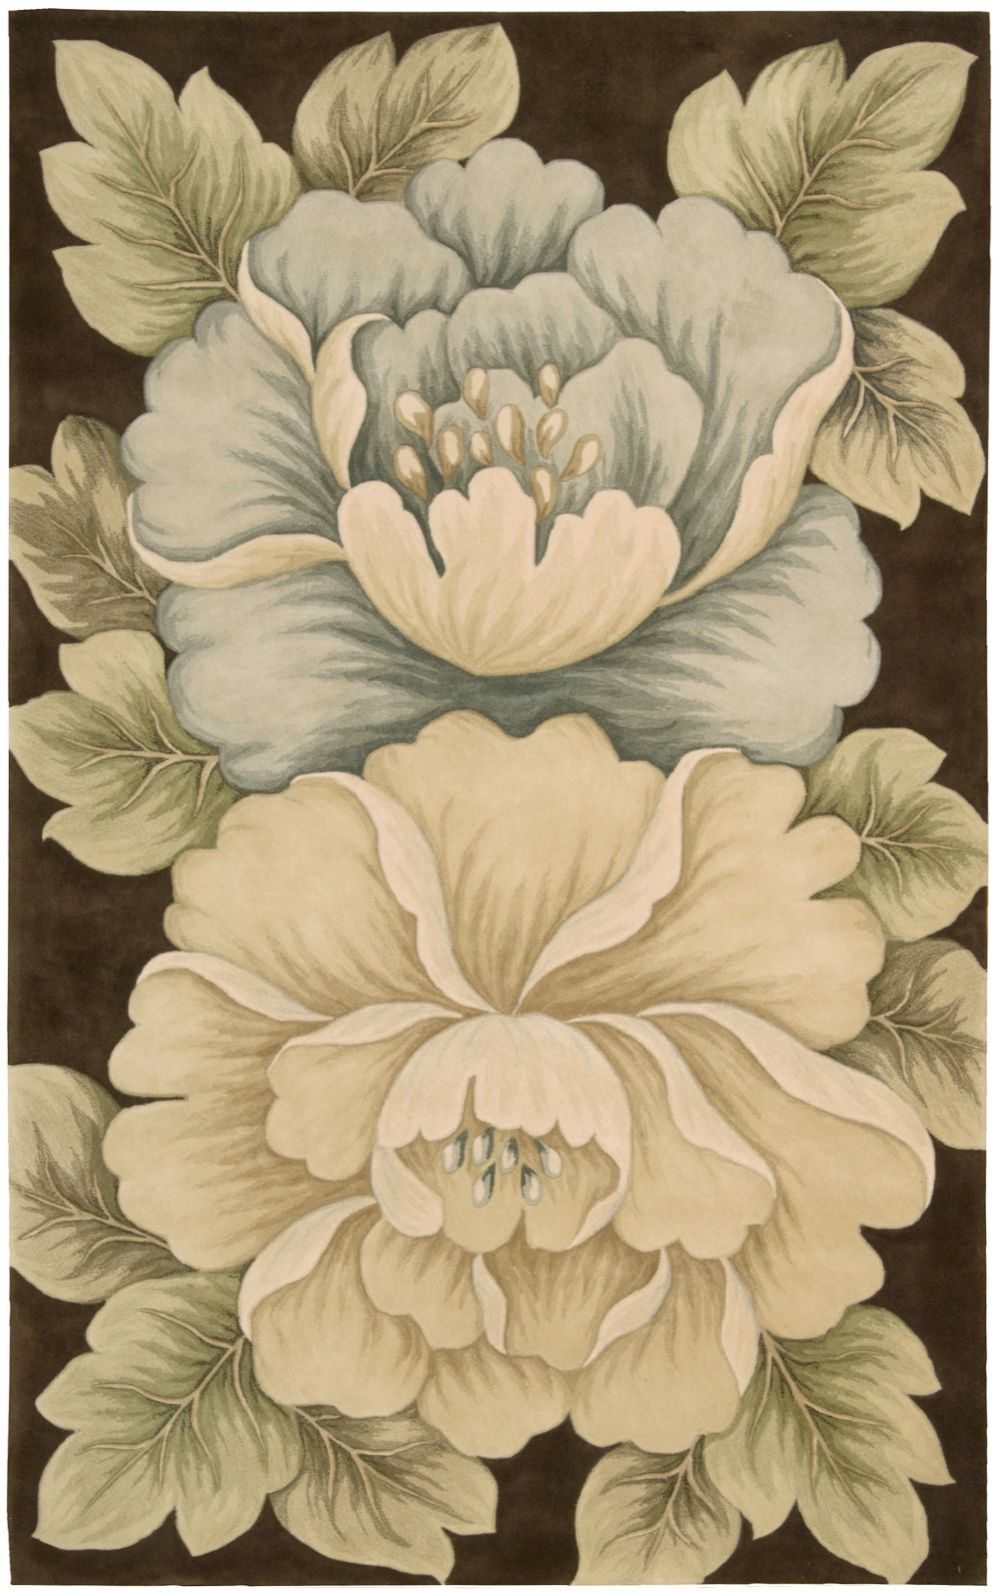 nourison tropics country & floral area rug collection